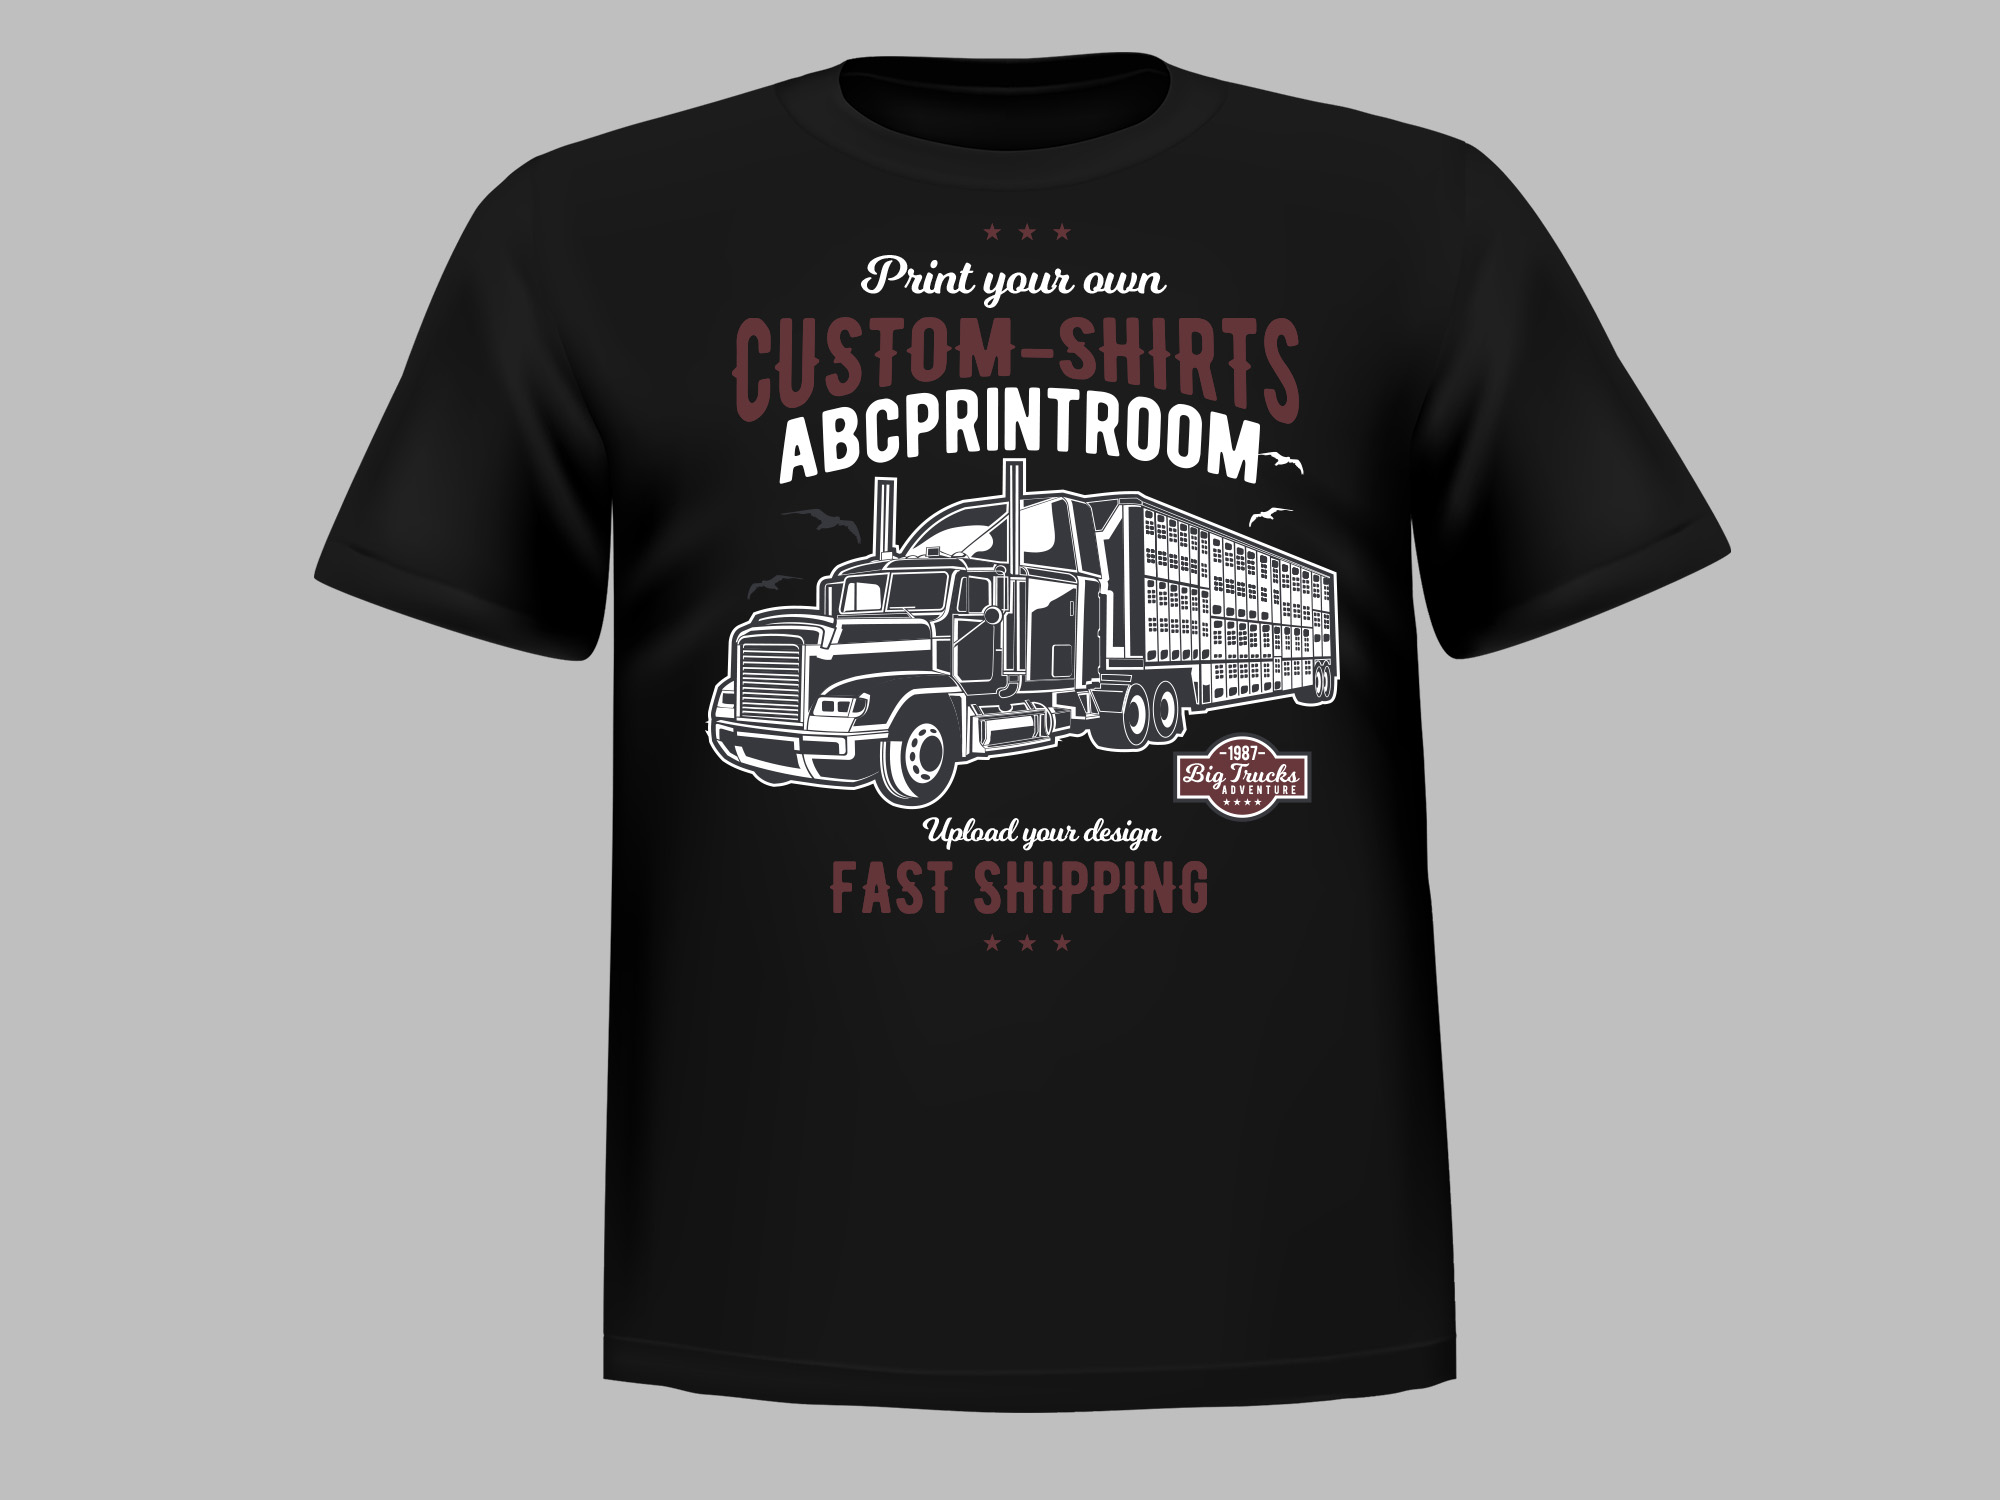 https://www.abcprintroom.com/images/products_gallery_images/sm_shirt67.jpg